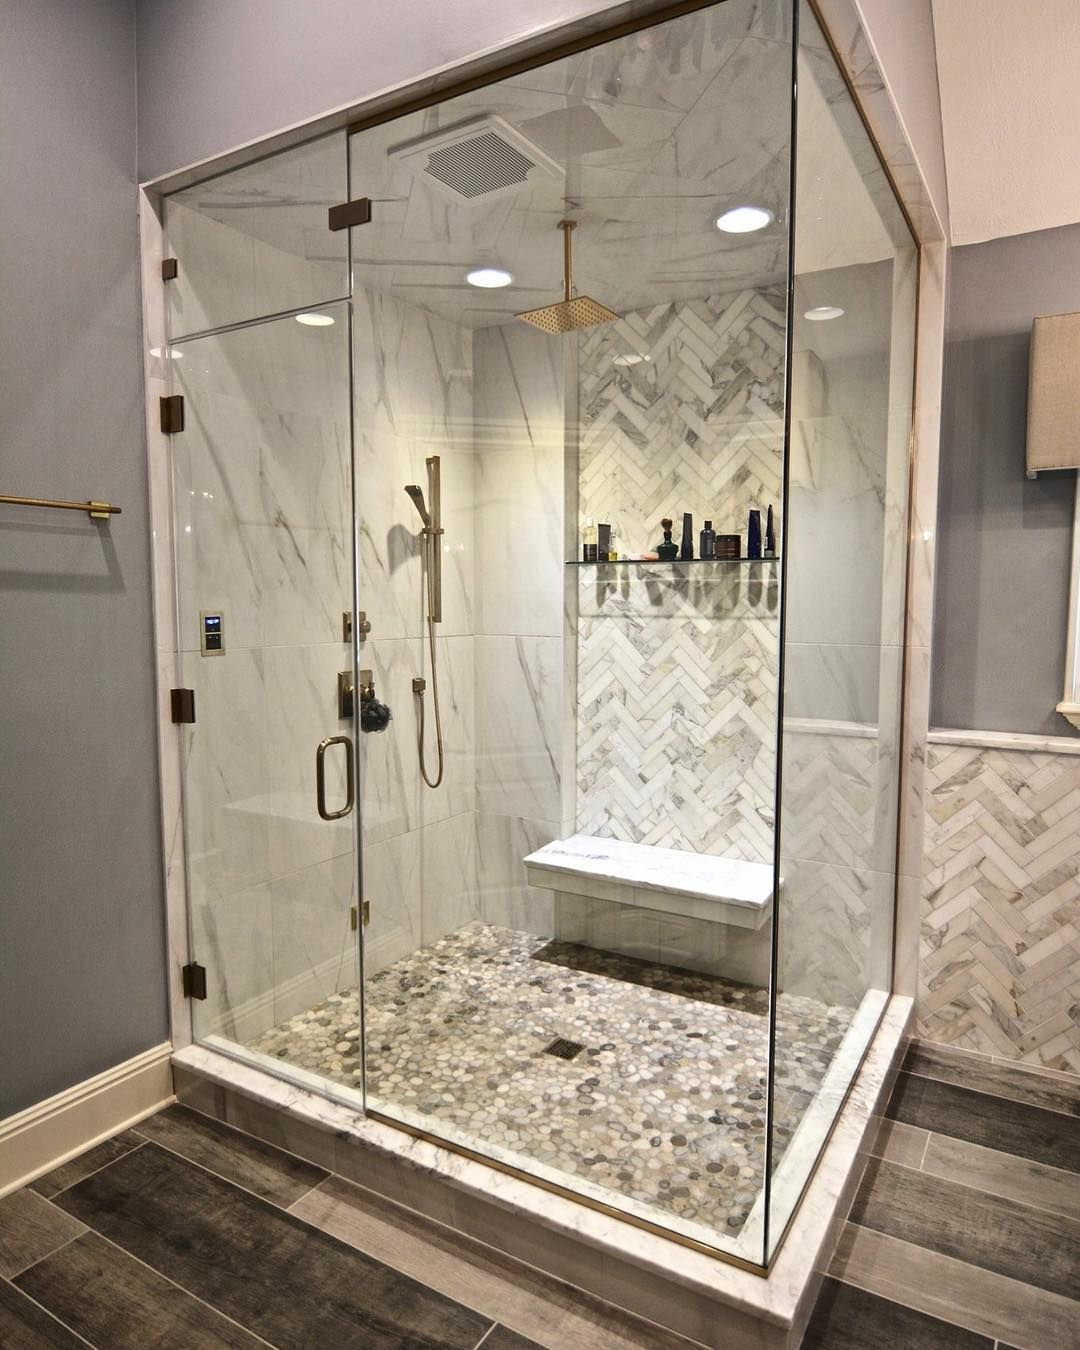 Chateau Kitchens On Instagram Over 9 Tall Ceiling In This Steam Shower Designervictoria St Tall Ceilings Hospital Interior Design Bathroom Makeover